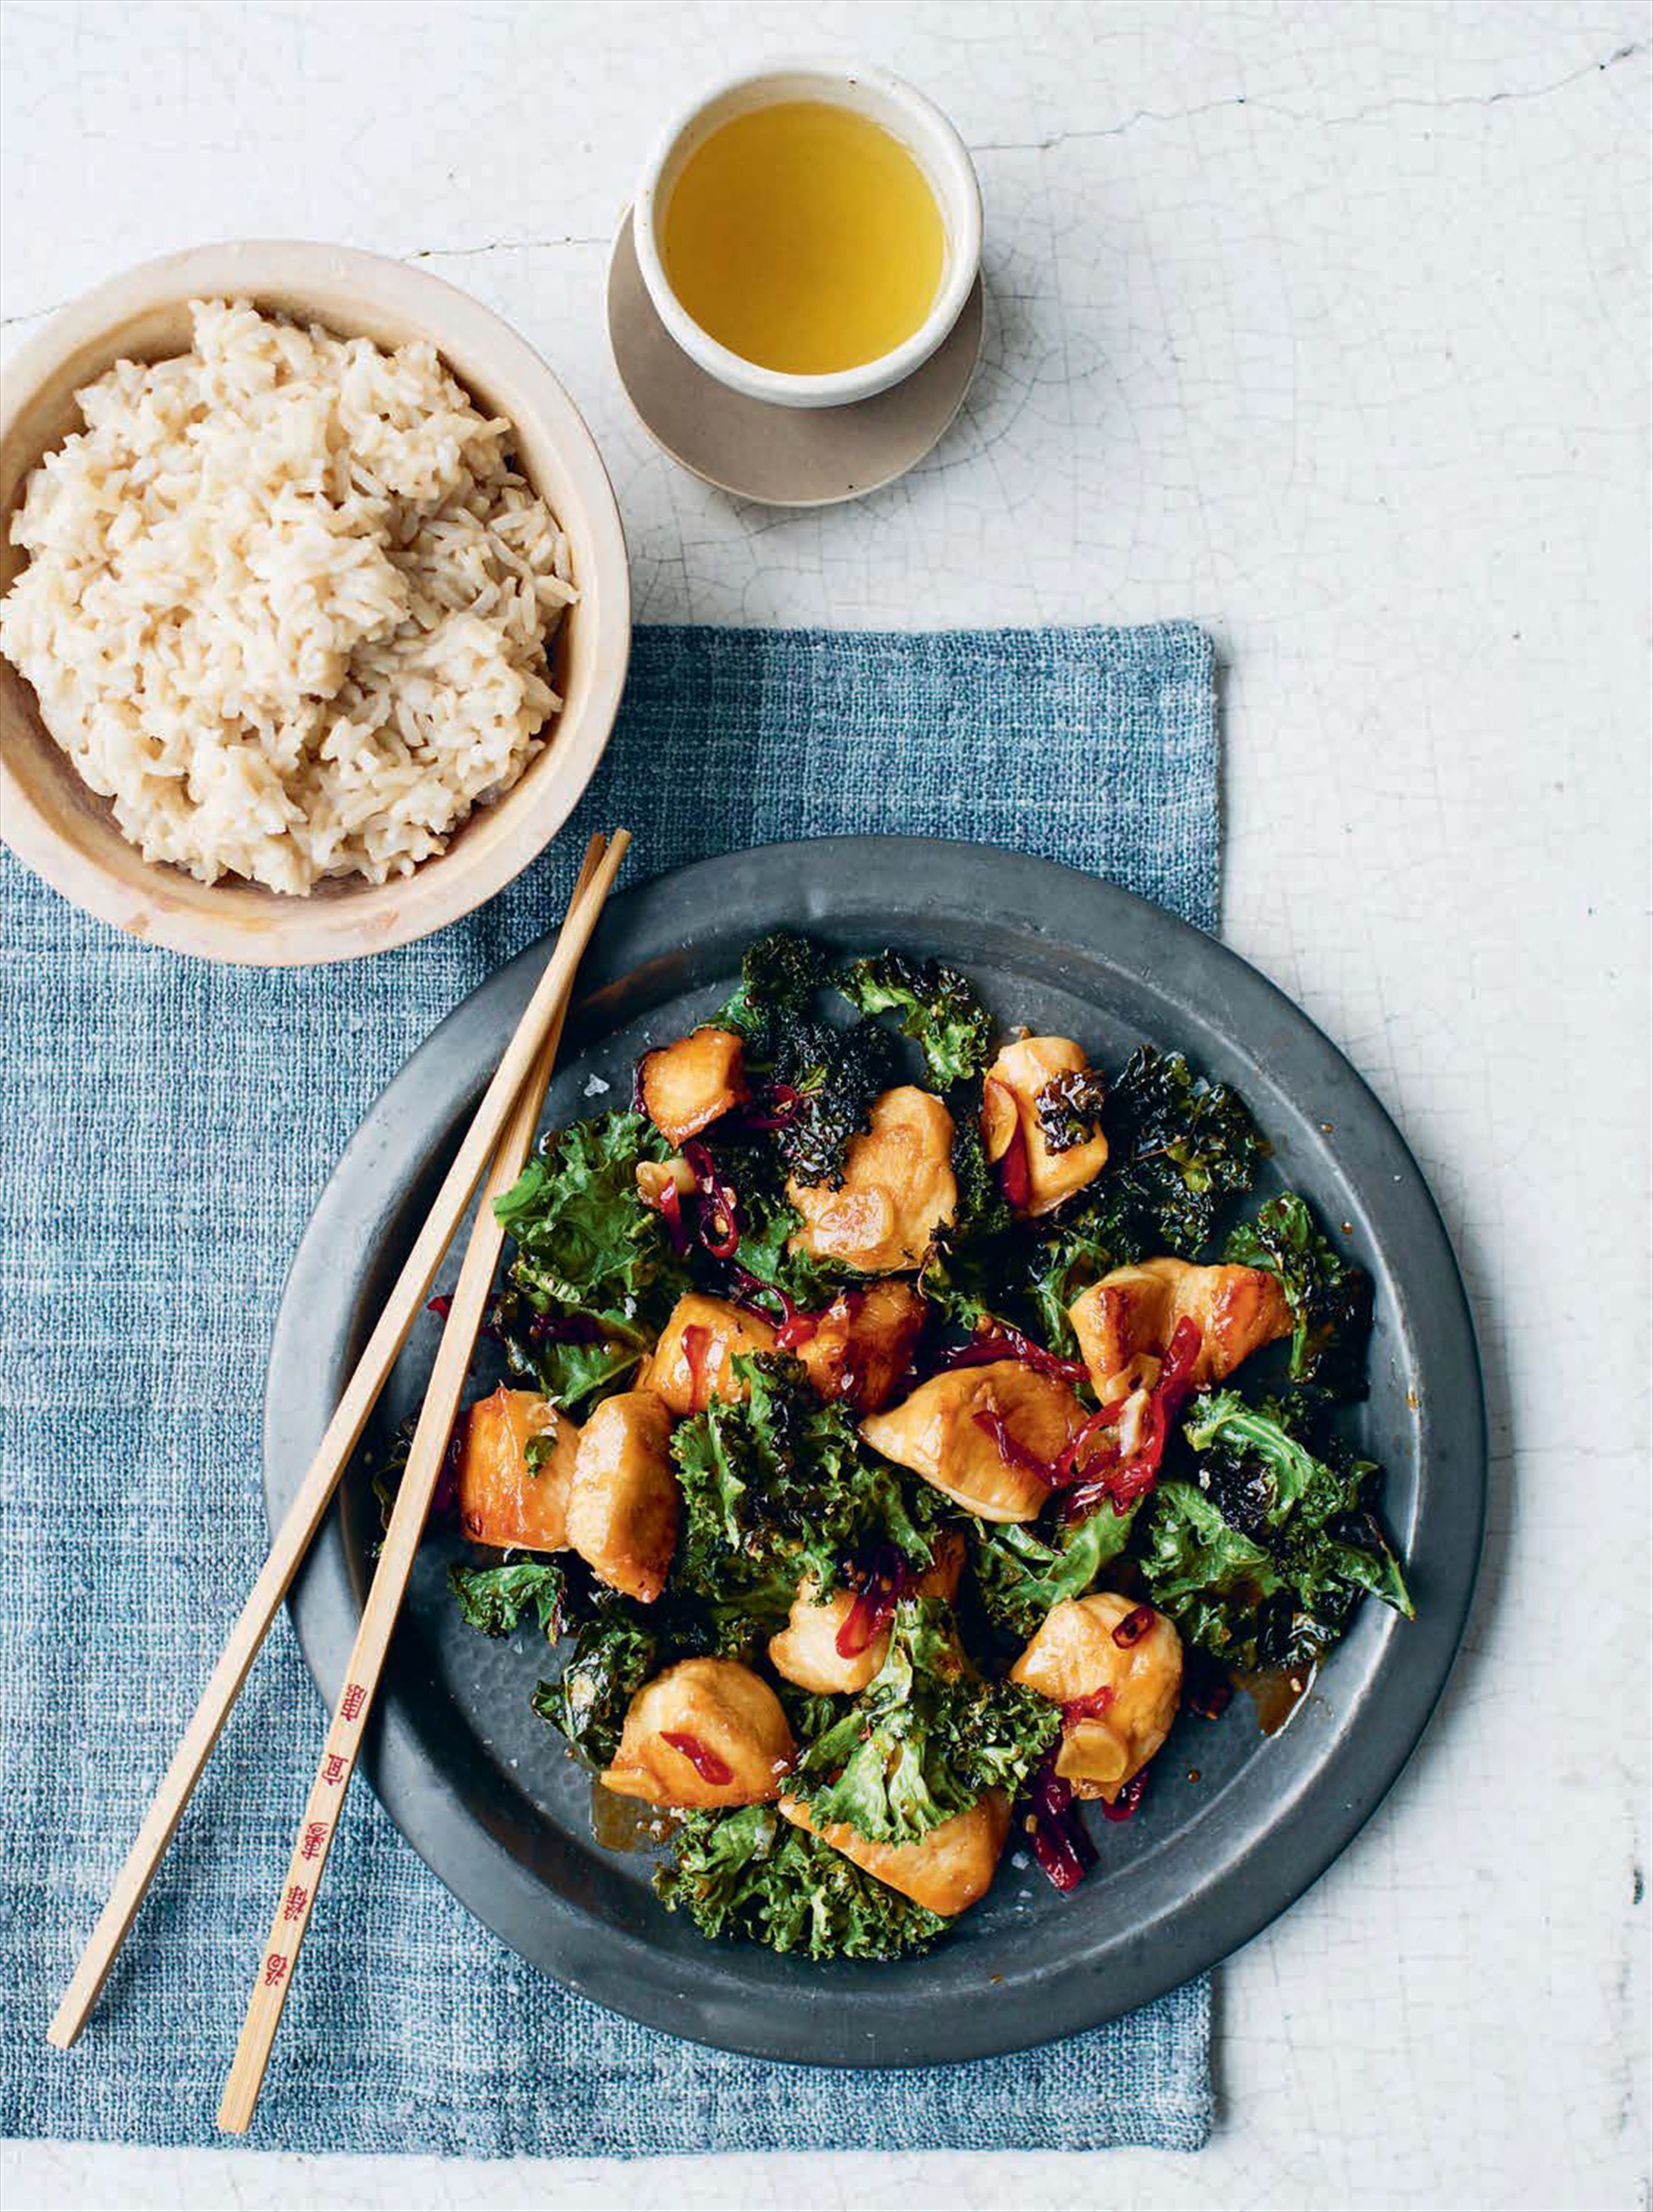 Sticky chilli chicken and greens